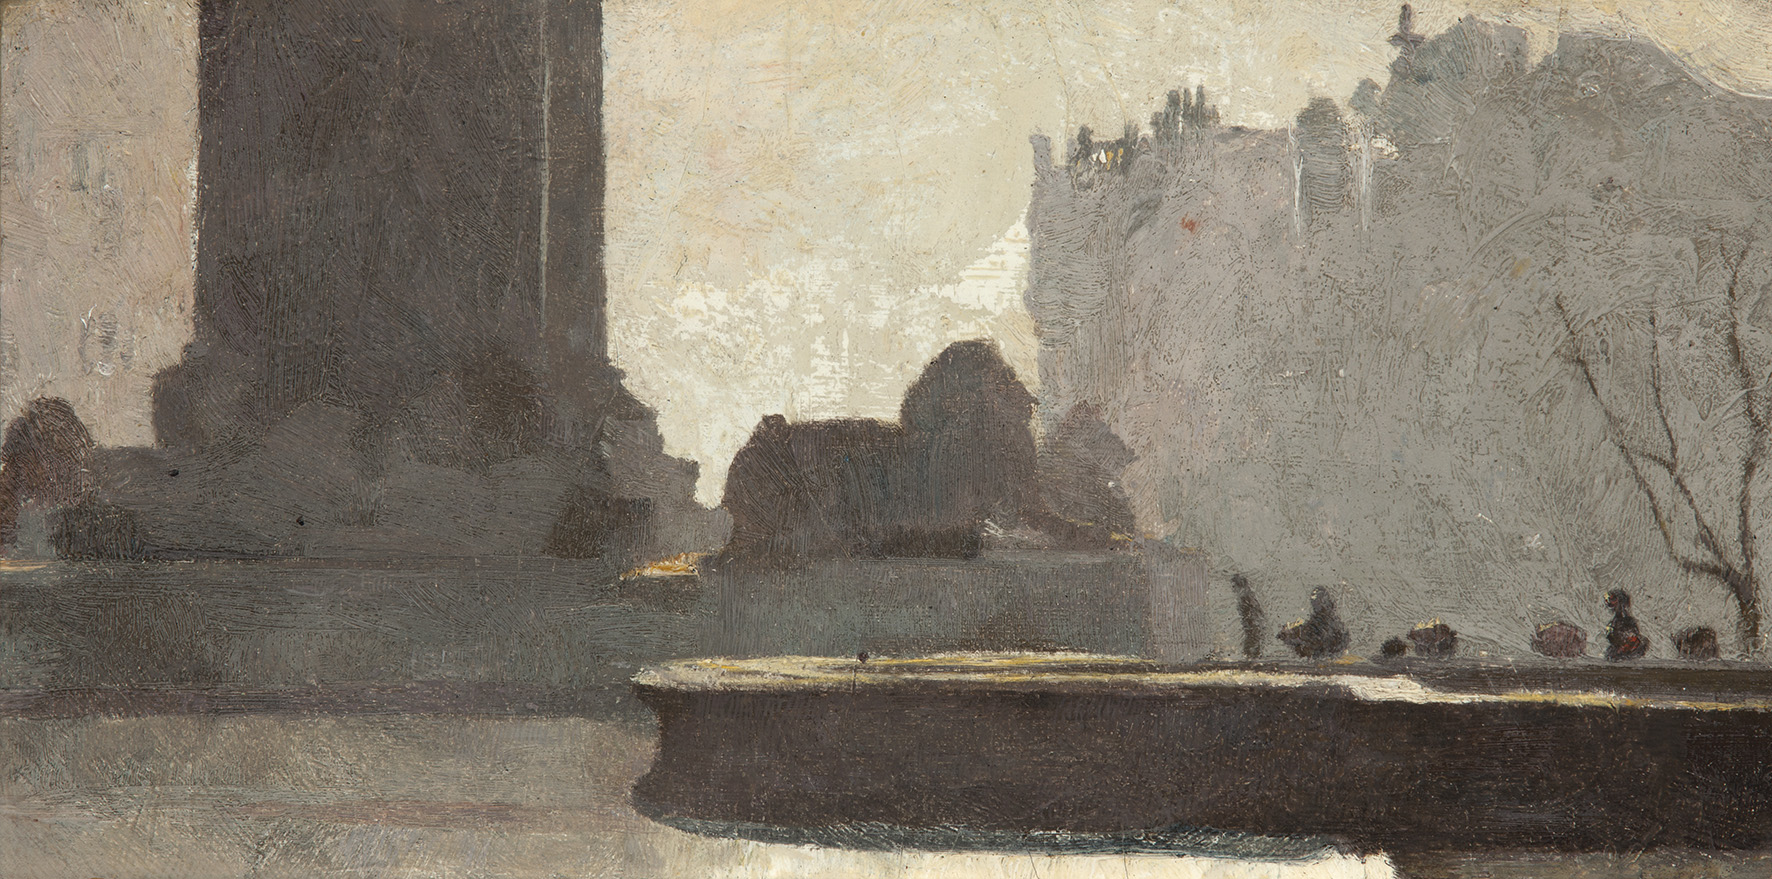 Tom Roberts  Trafalgar Square , 1904 Oil on cardboard 14 × 28 cm Art Gallery of South Australia, Adelaide South Australian Government Grant 1988 © Art Gallery of South Australia, Adelaide